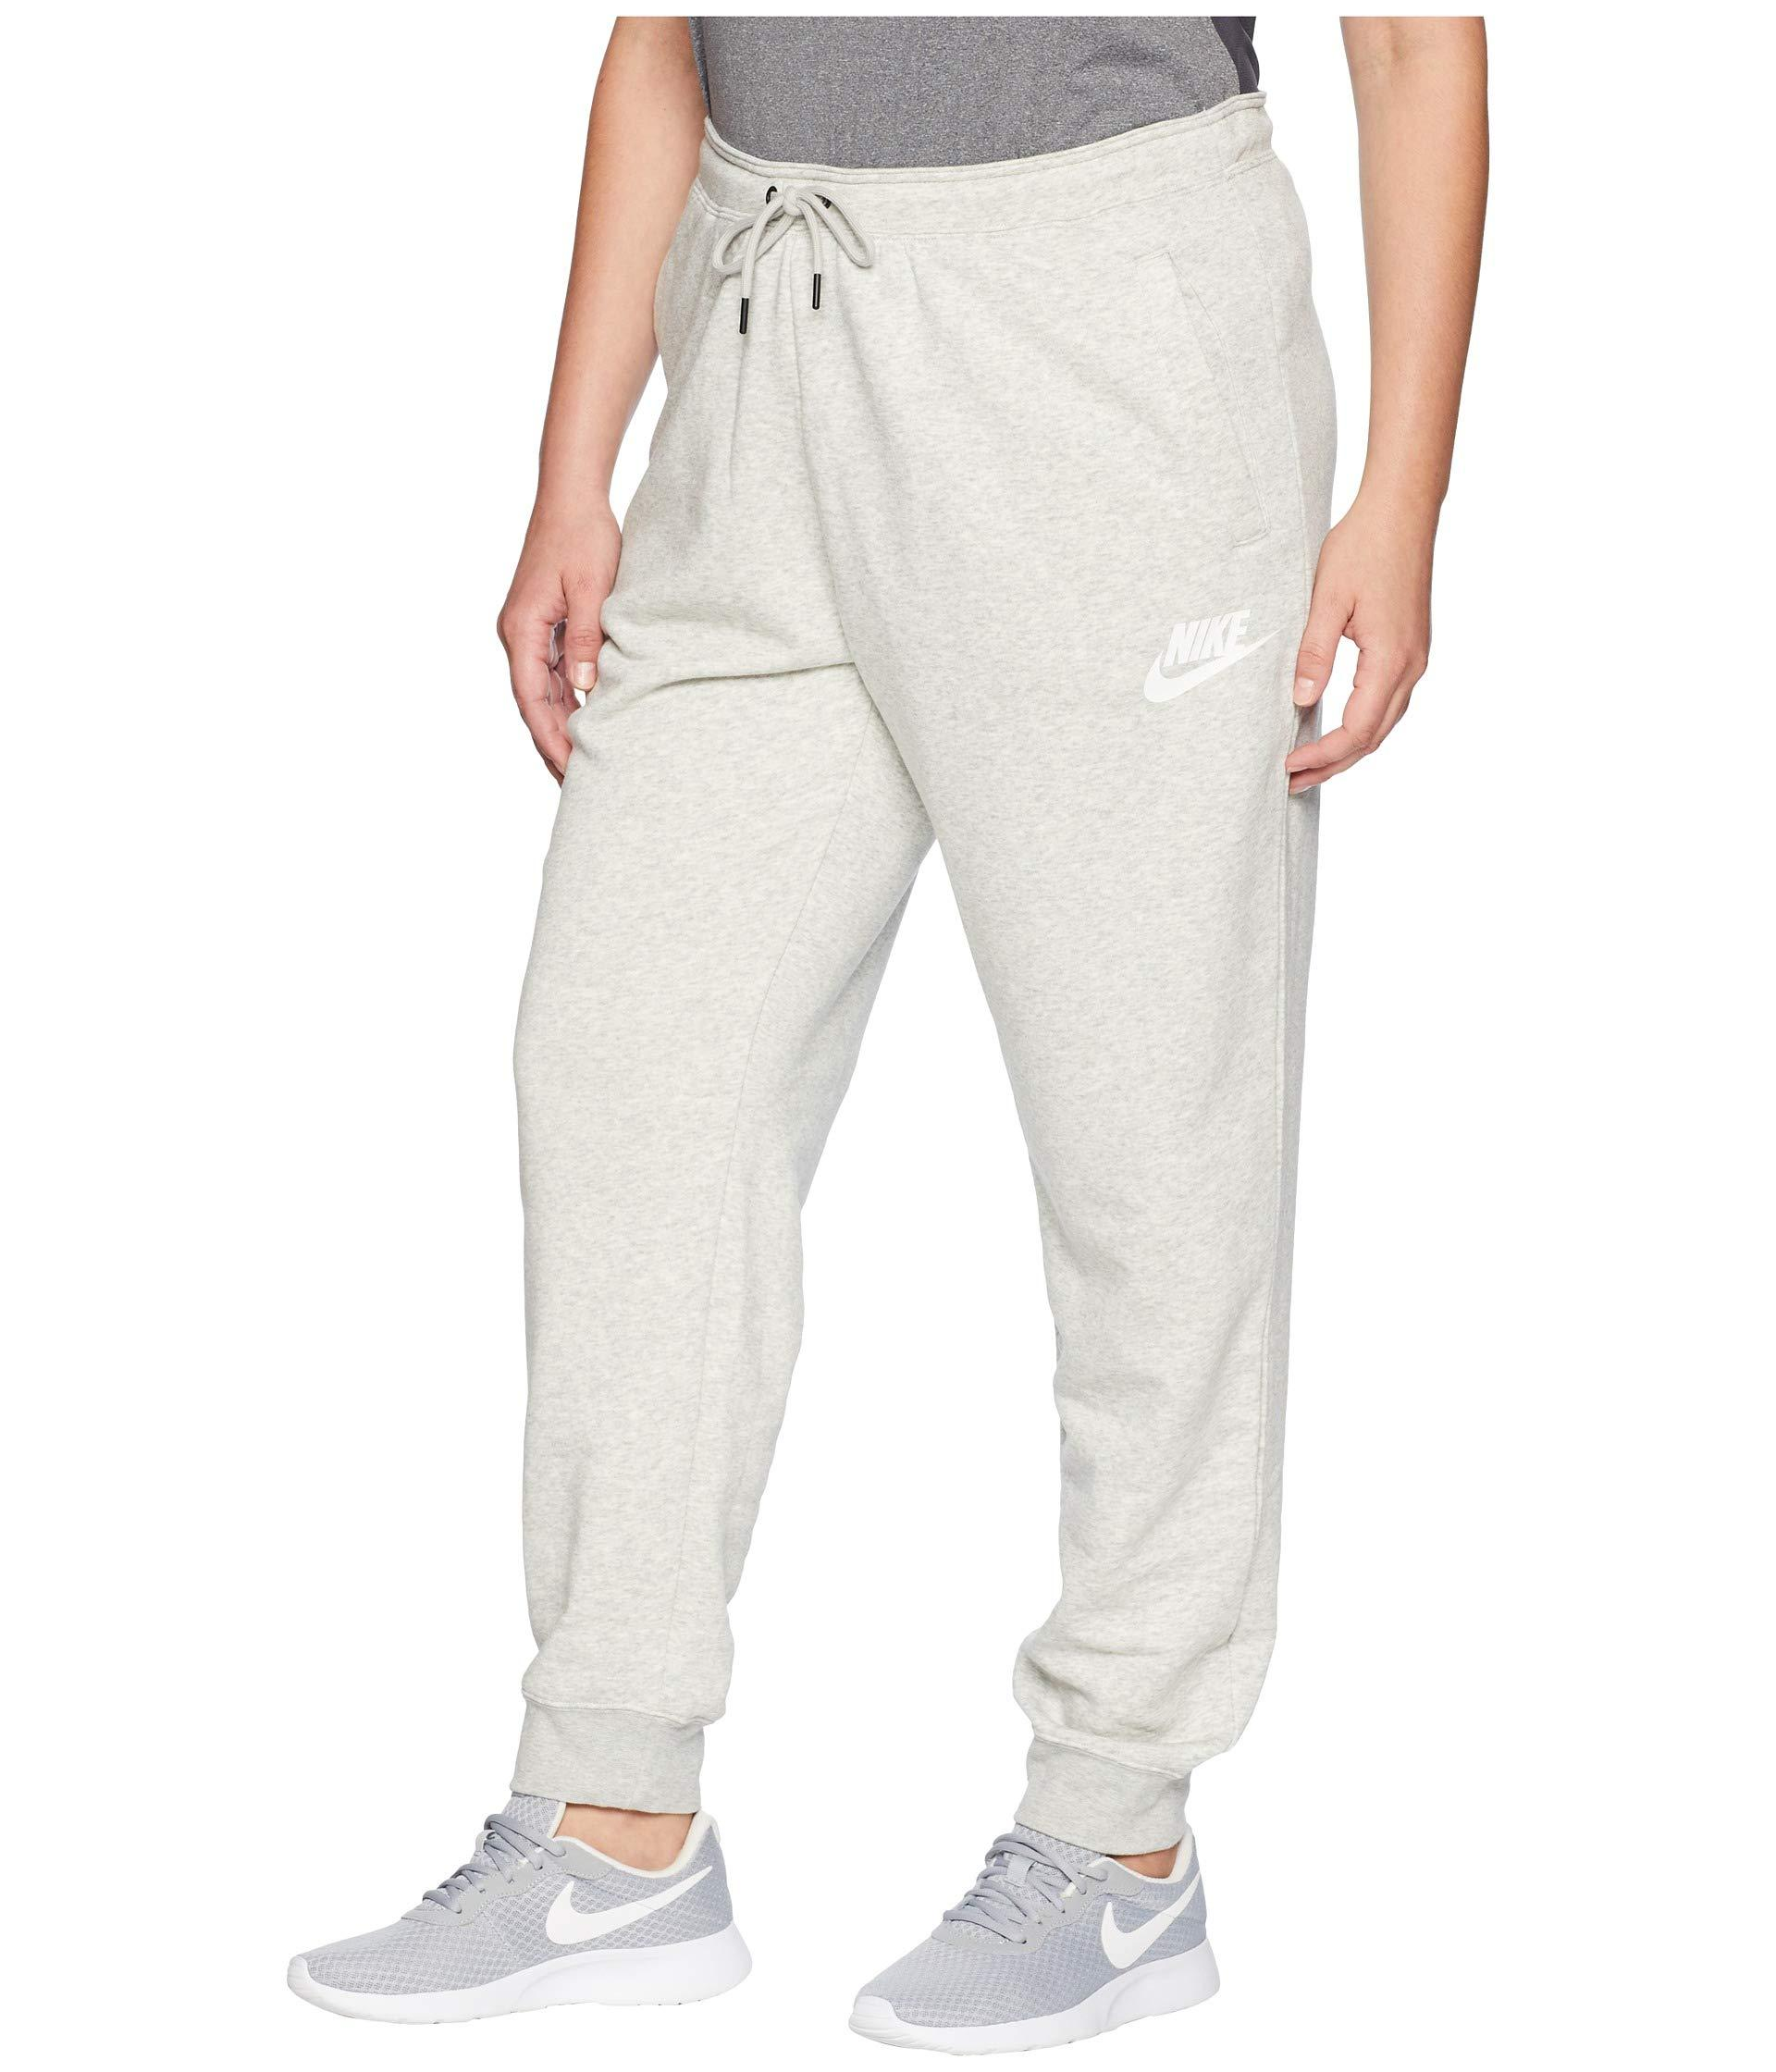 97ab49b5bcf Lyst - Nike Plus Size Regular Rally Pants in Gray - Save 2%